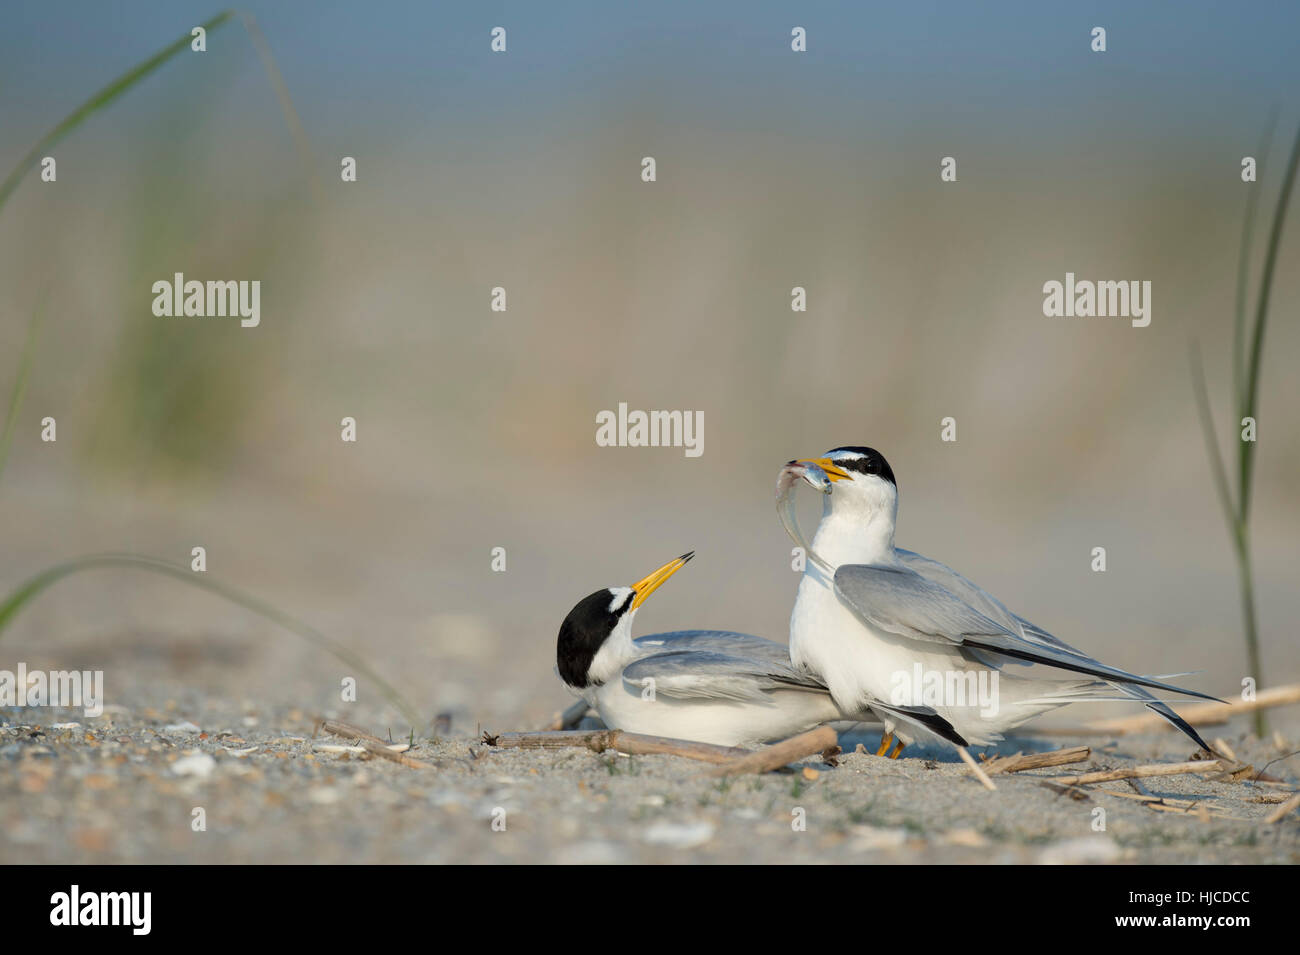 A pair of Least Terns perform a courtship ritual as the male shows off a fish to the female bird on a sandy beach. - Stock Image